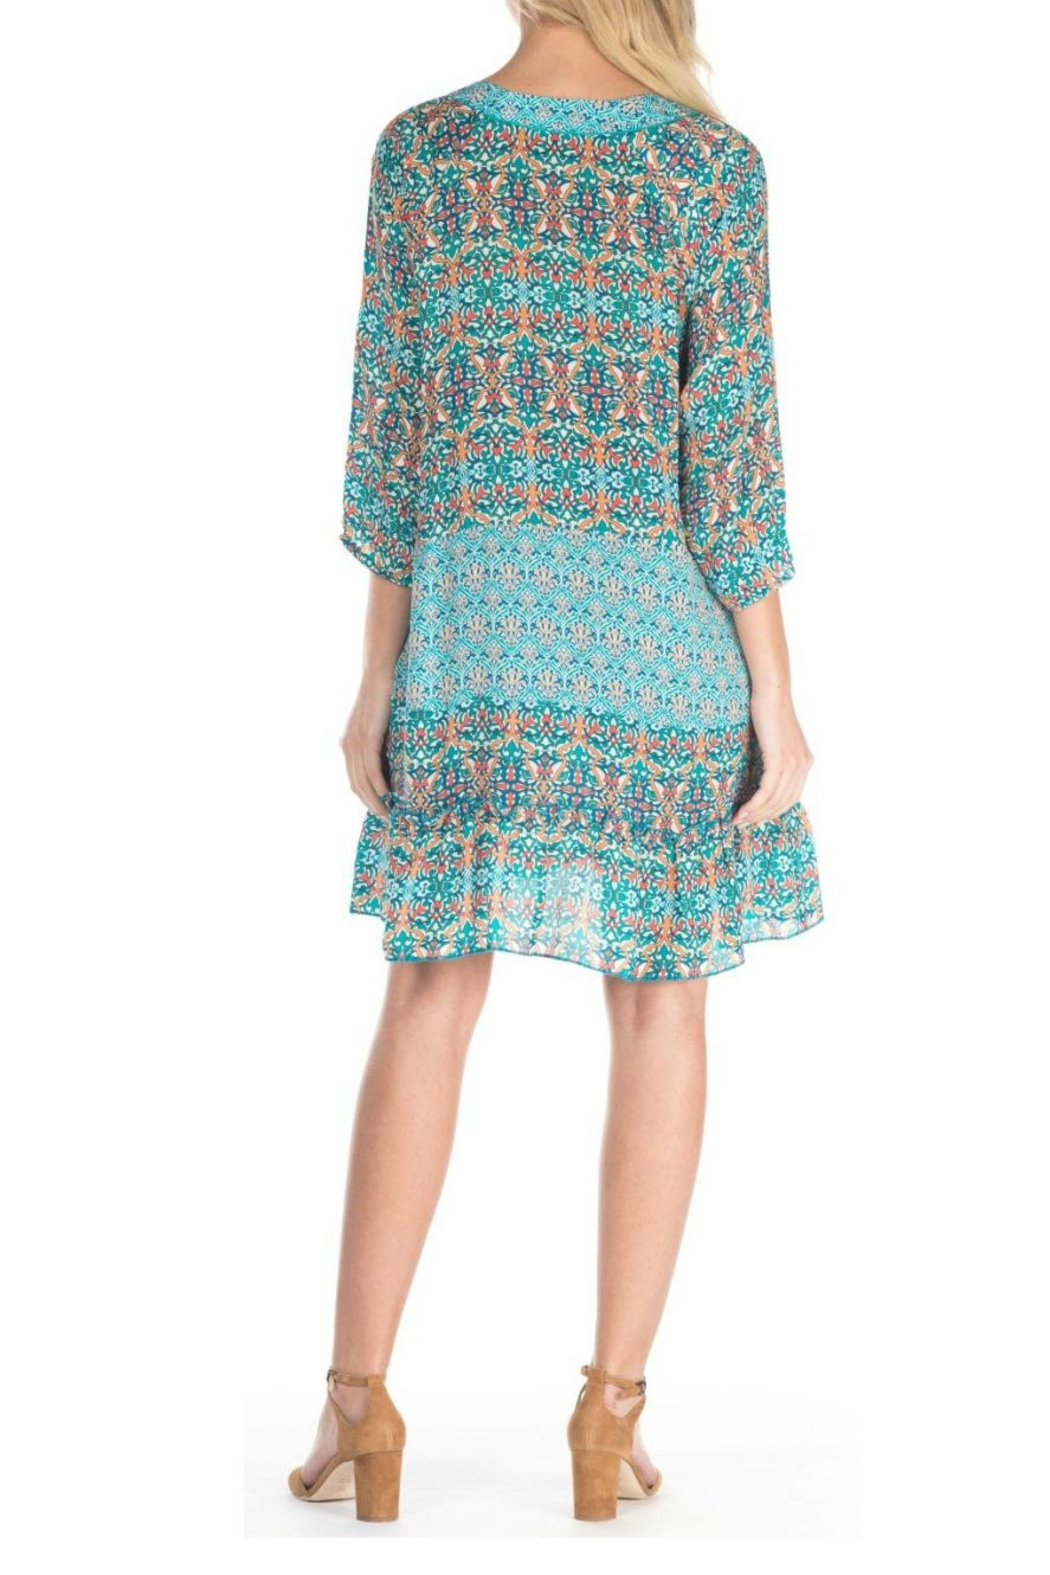 Tolani Dolly Turquoise Dress - Front Full Image